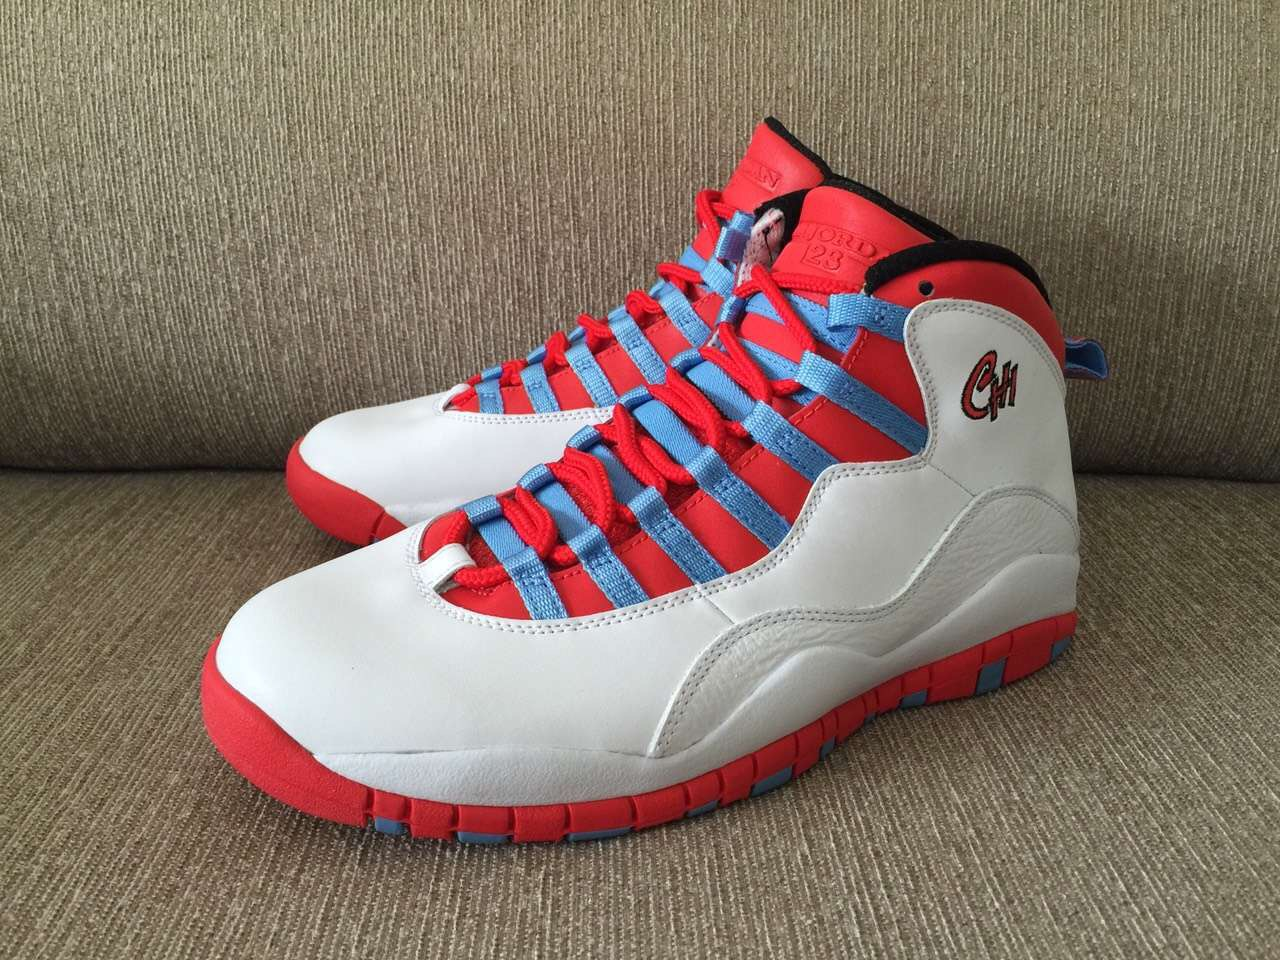 best service cf6bd 1dce3 The Air Jordan 10 Chicago Flag Drops This Spring ...